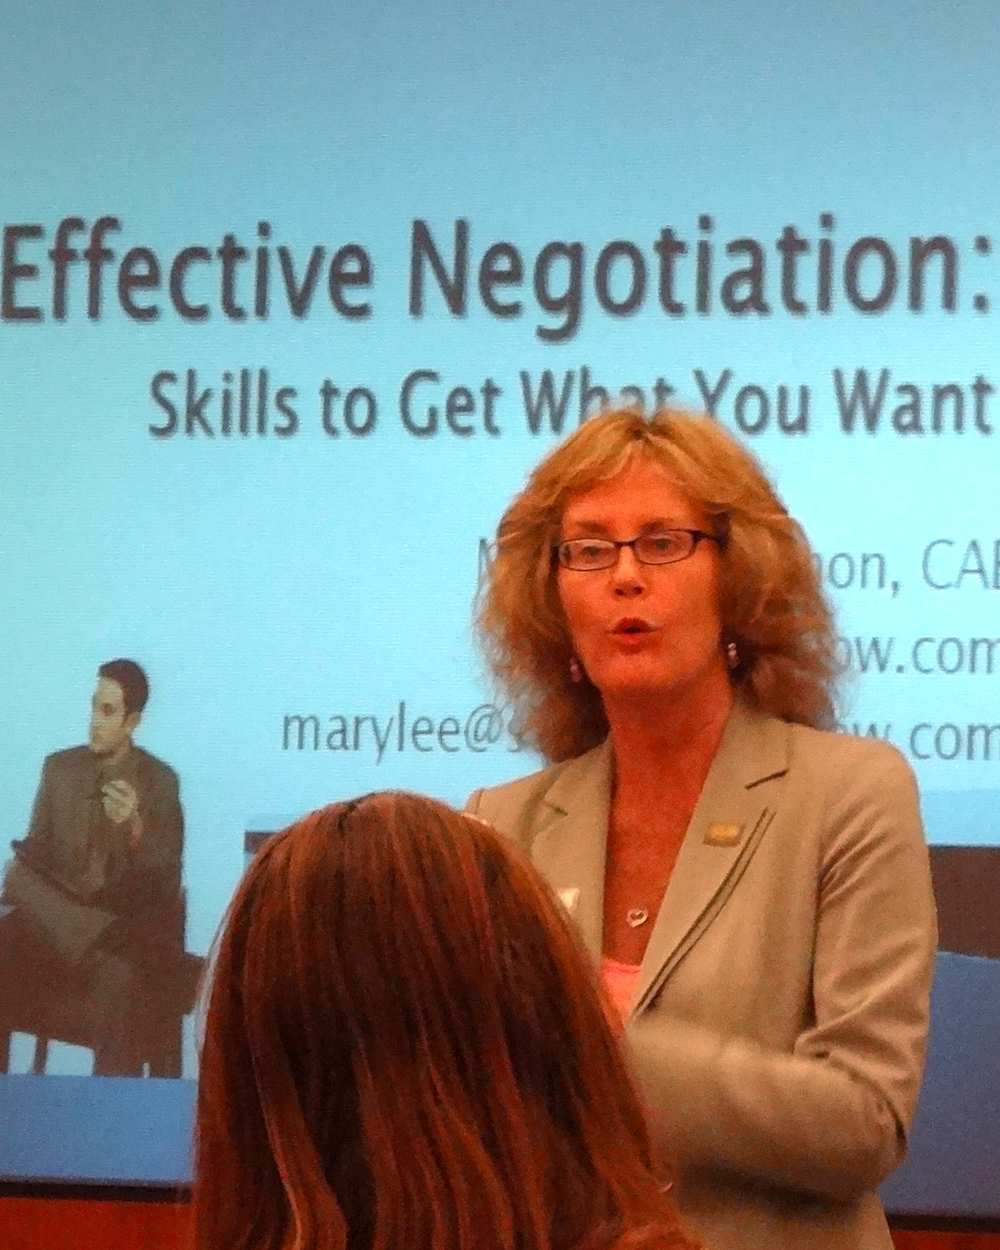 Mary Lee speaks to leaders on Effective Negotiations and Employee Engagement. Read the testimonials!